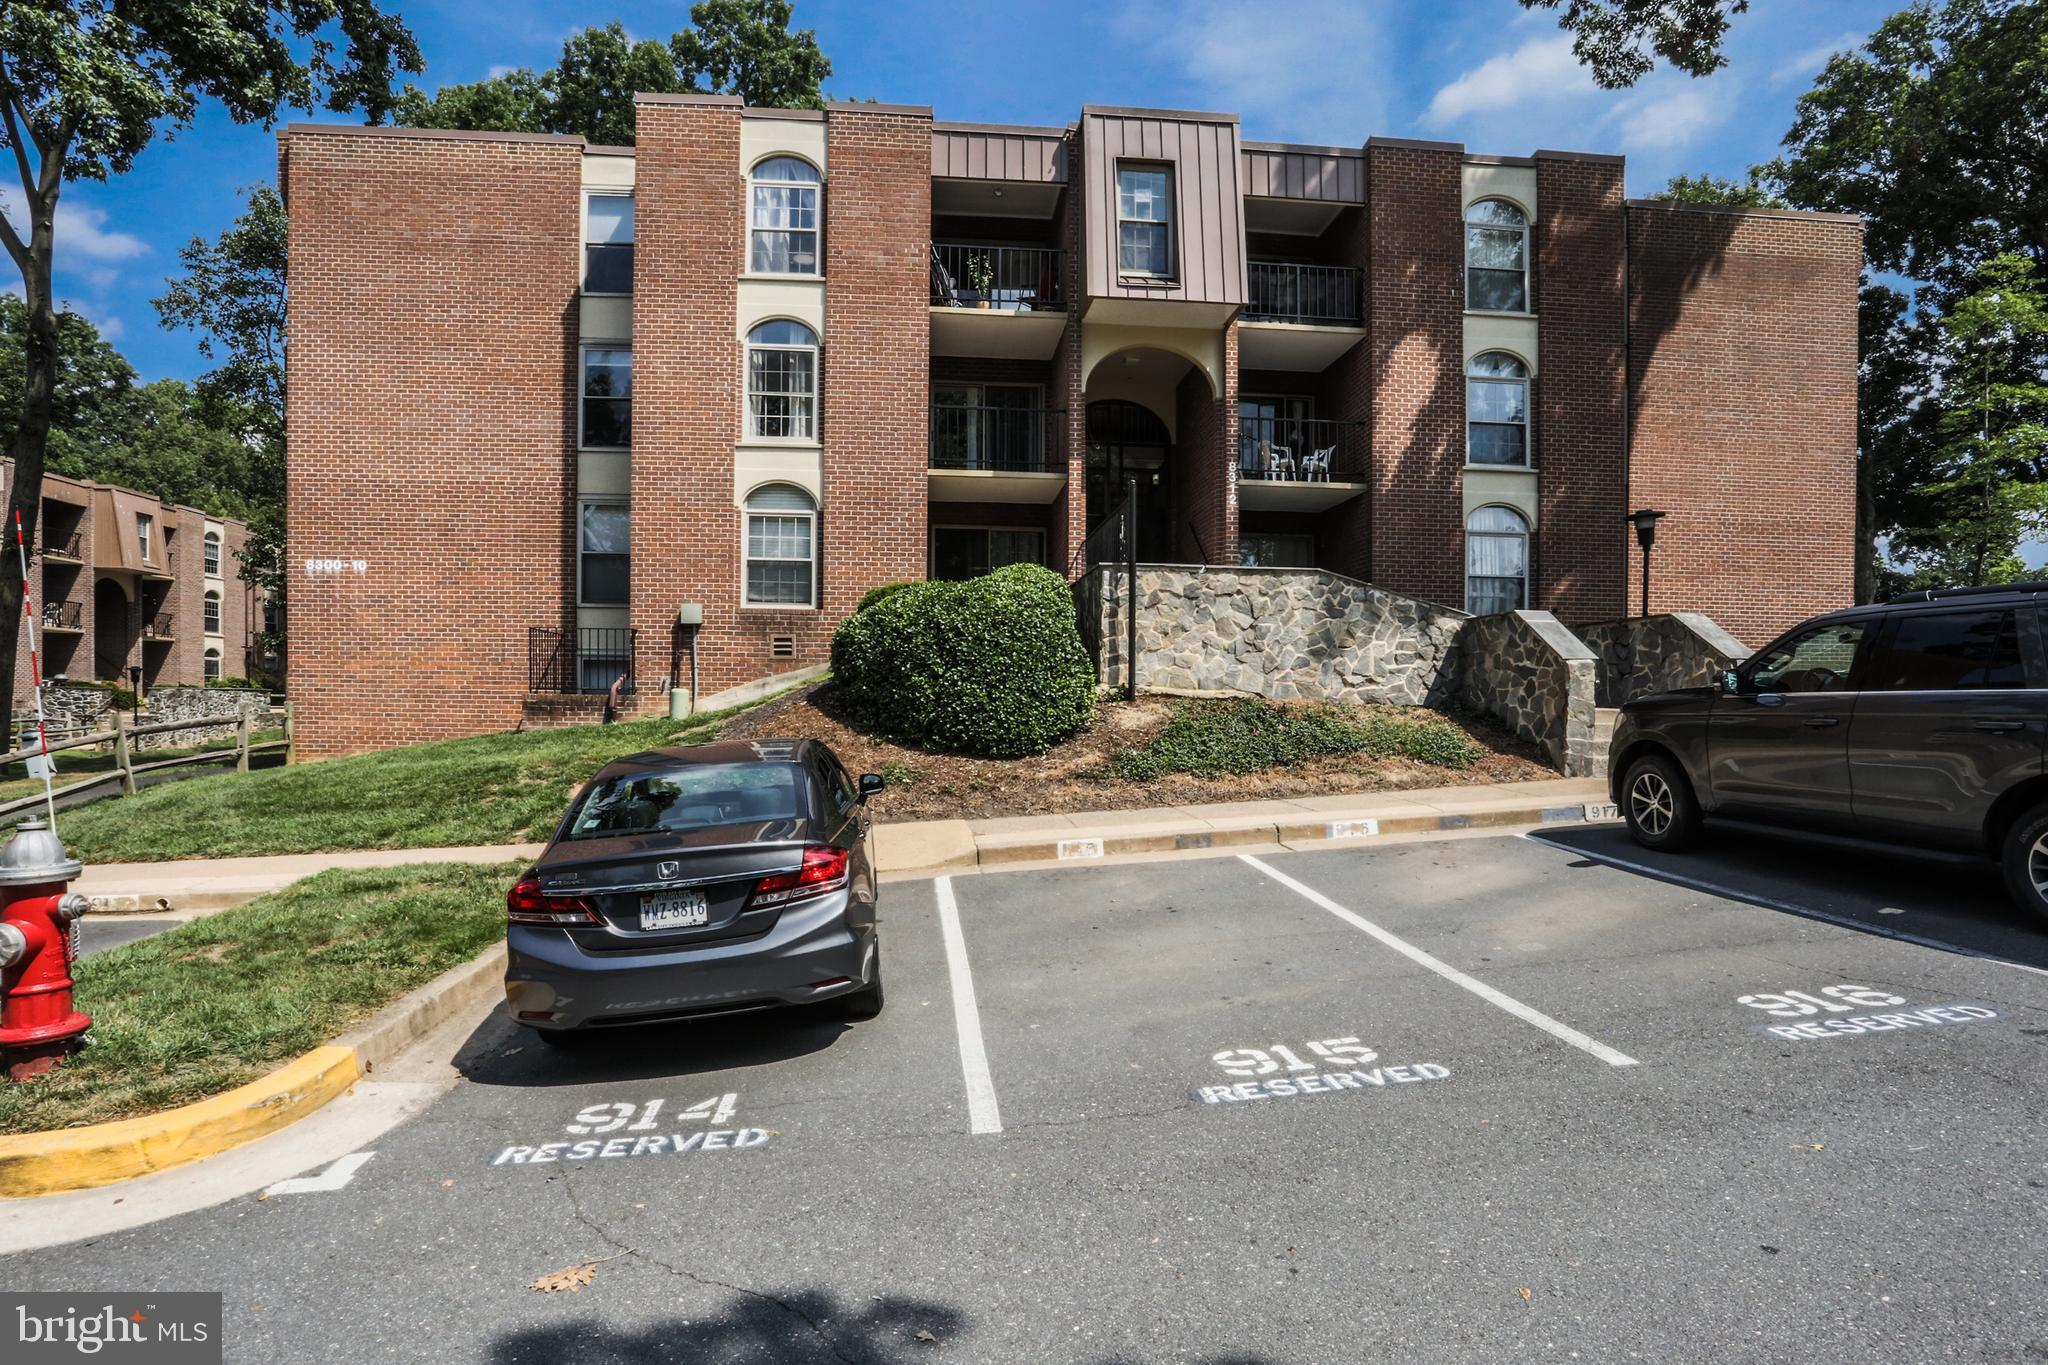 Renovated ! Pretty Laminate floor, Freshly painted. Lovely garden view. Close to 495,not too far from the metro. Condo fee includes all utility. Park at 917